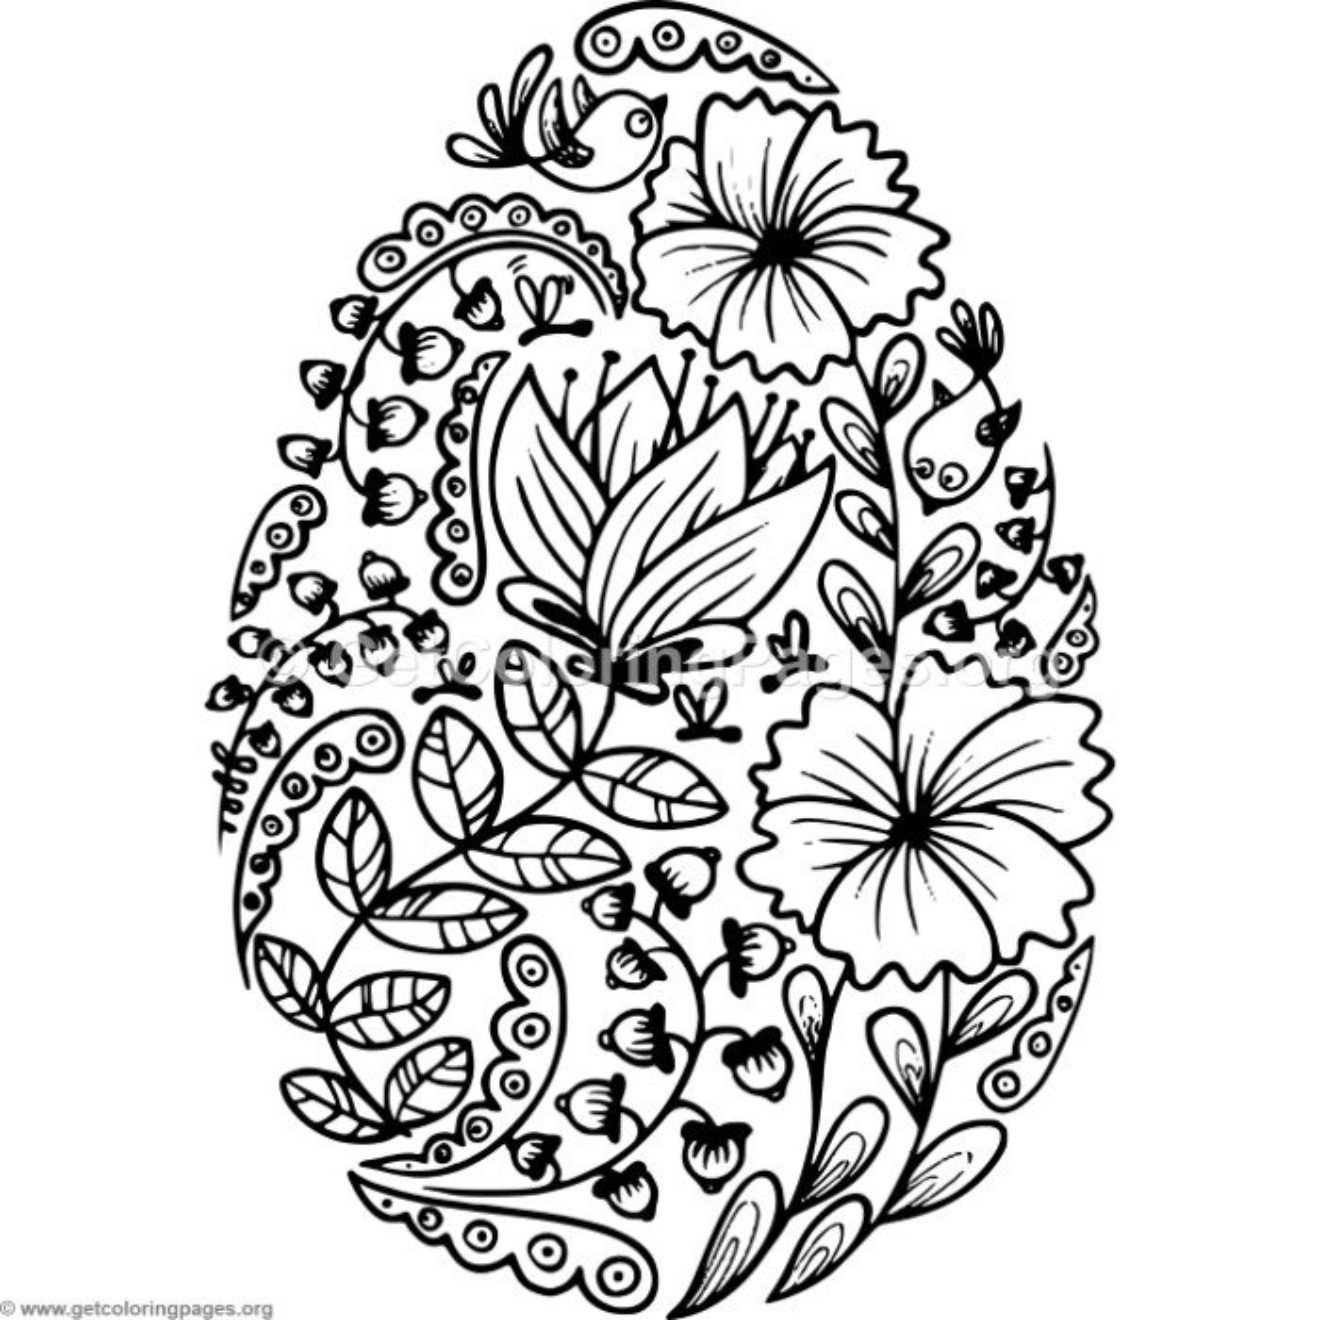 Easter Coloring Pages Getcoloringpages Org Coloring Easter Eggs Easter Egg Coloring Pages Egg Coloring Page